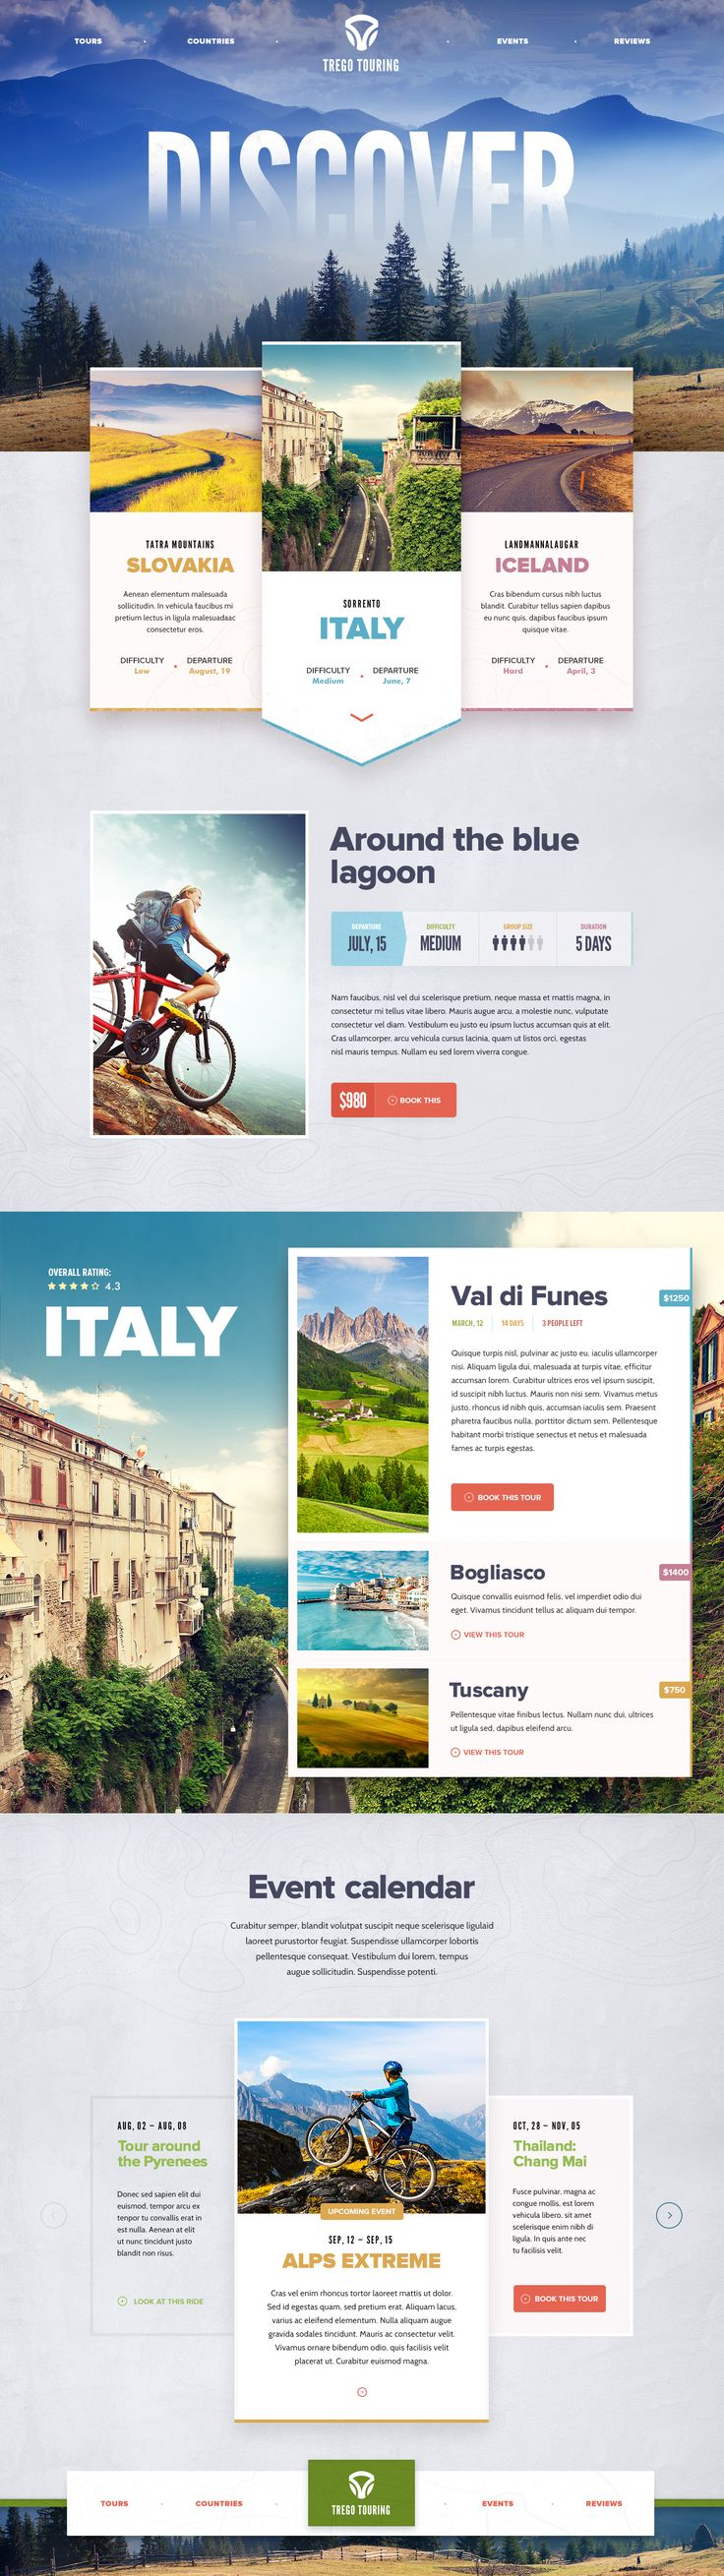 Trego Touring (guided bicycle tours) Ui design concept and visual style by Mike | Creative Mints (Top Design Style)